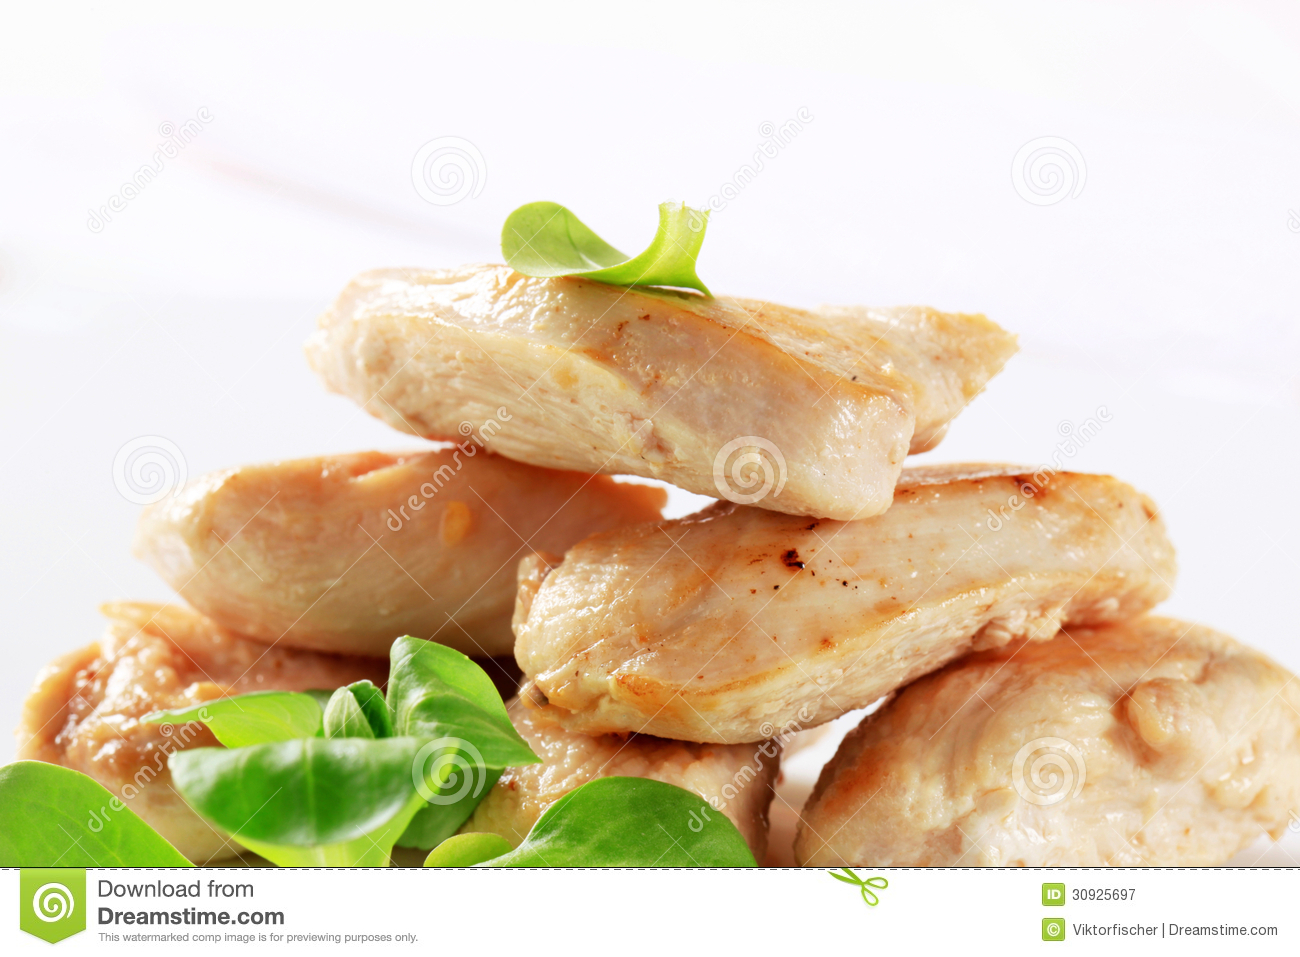 how to cook chicken fillets in pan